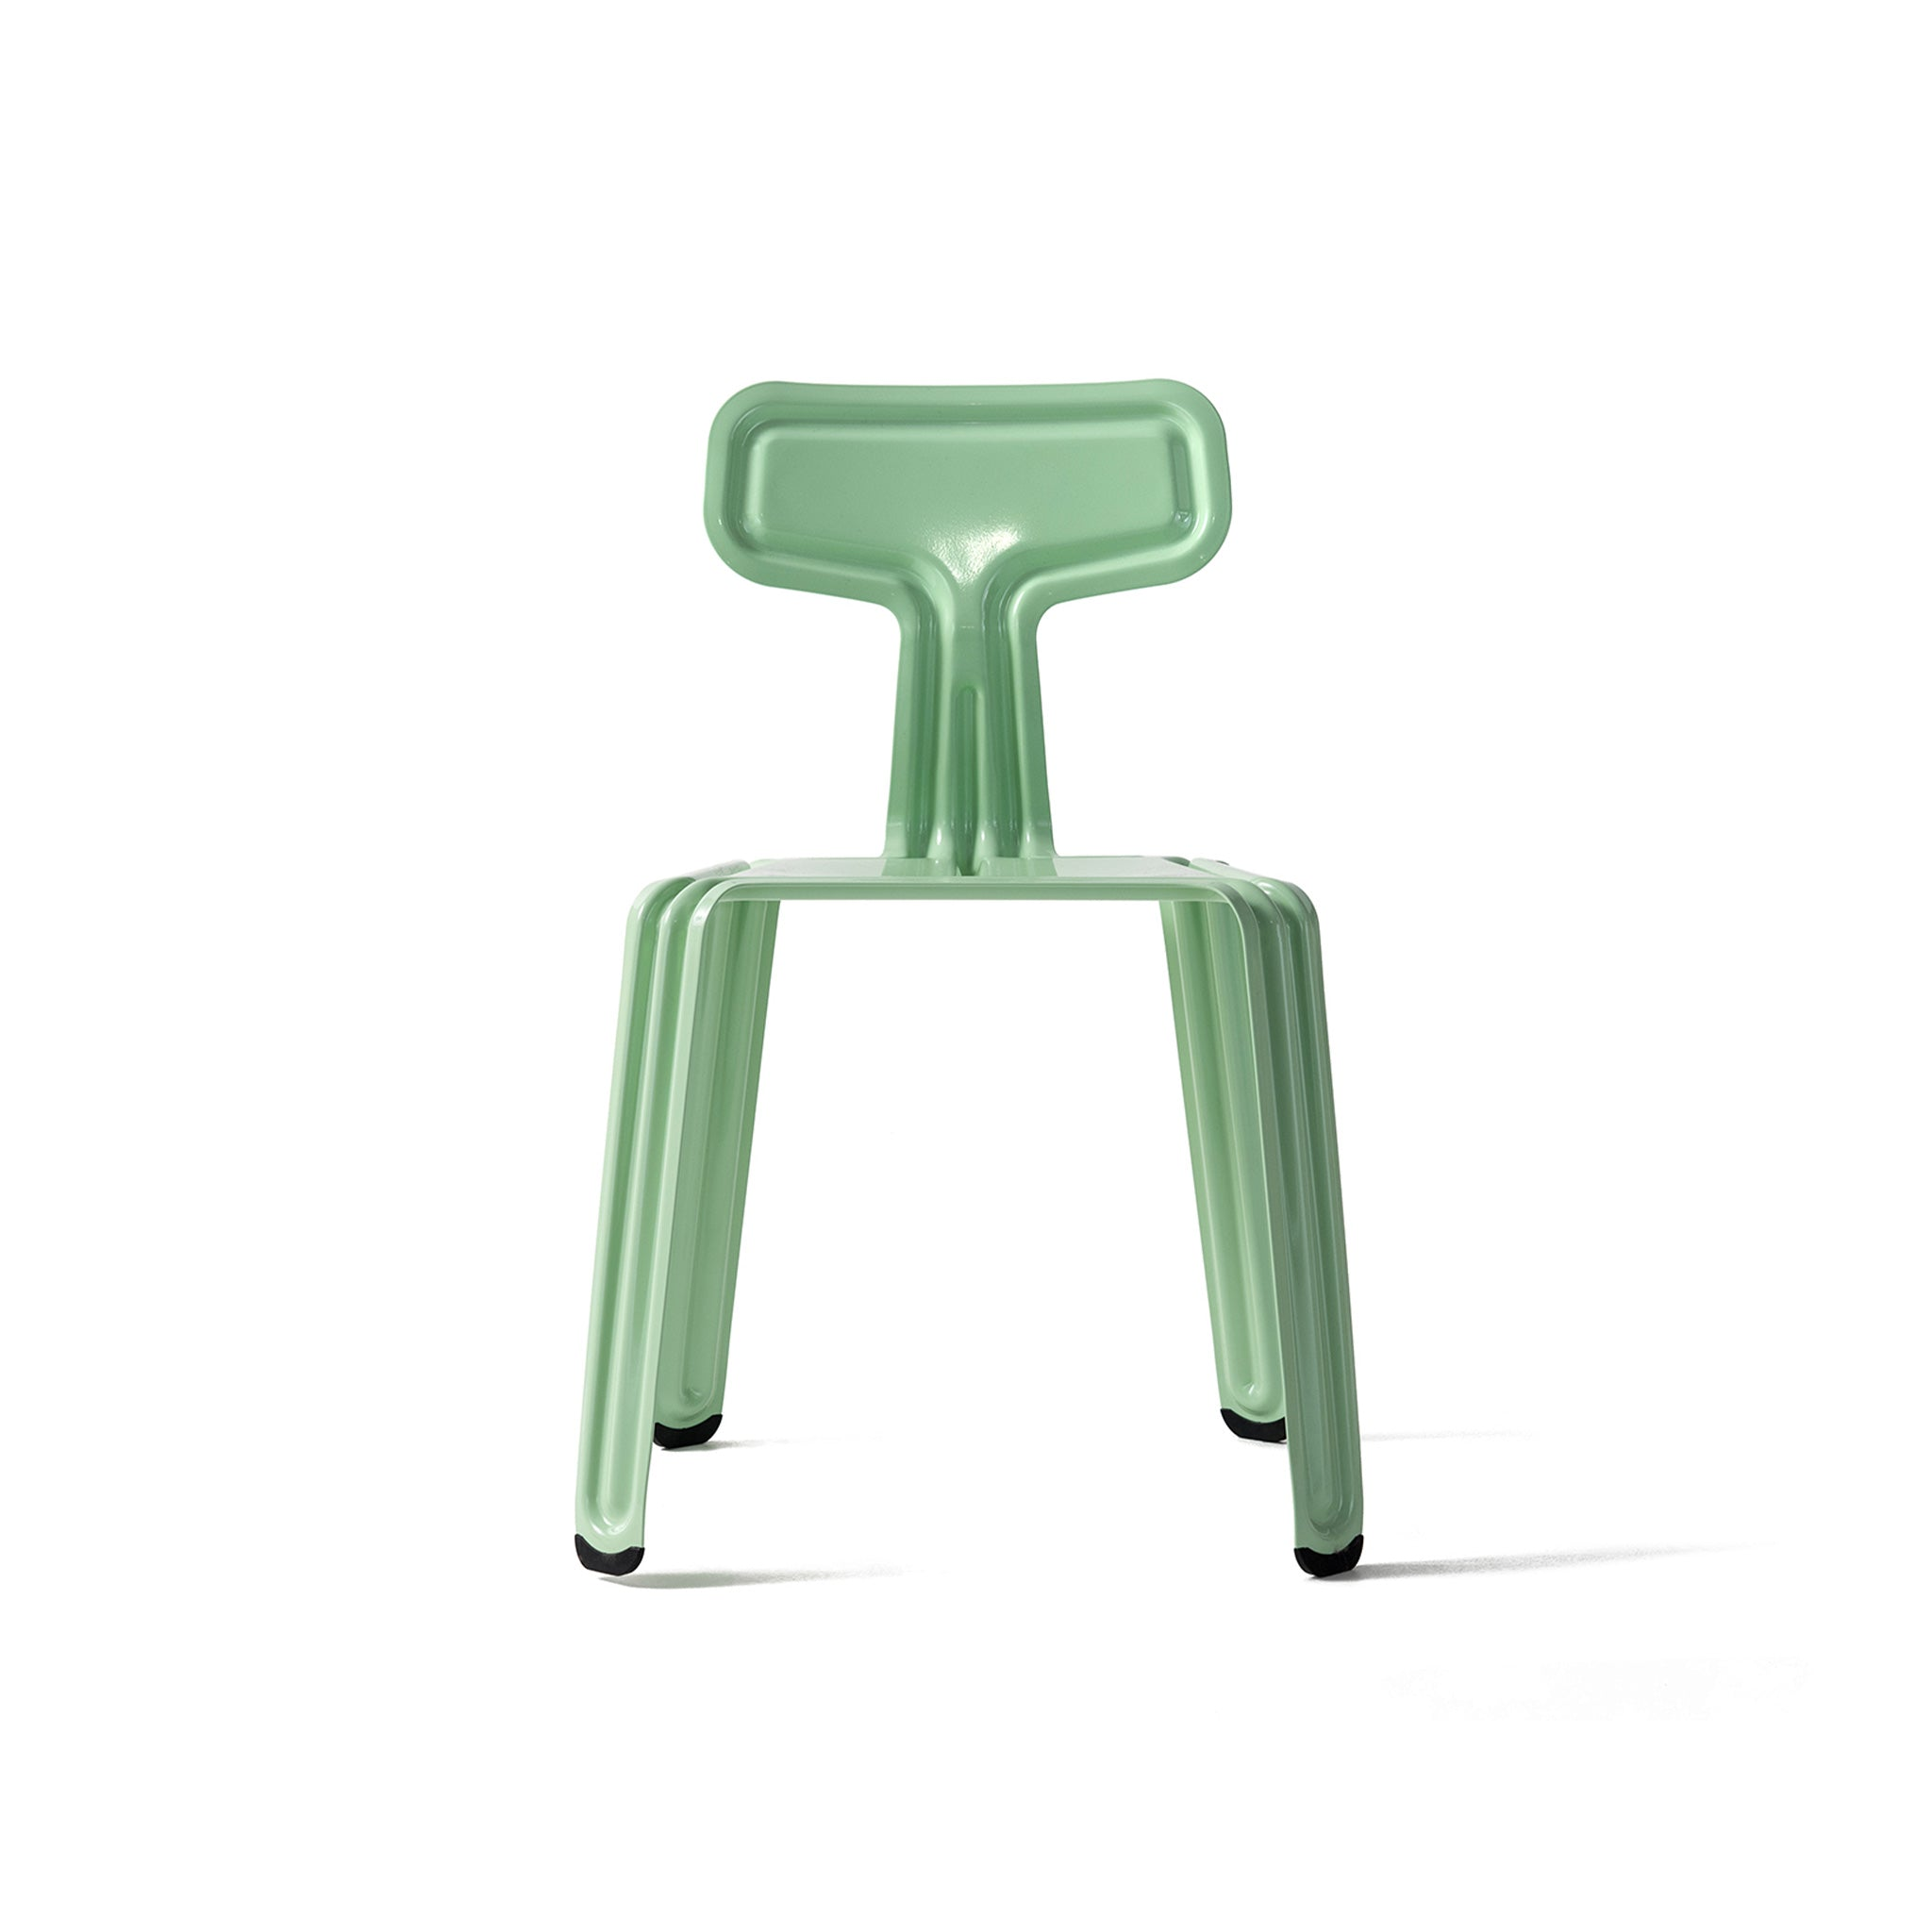 Nils Holger Moormann Stuhl | Pressed Chair